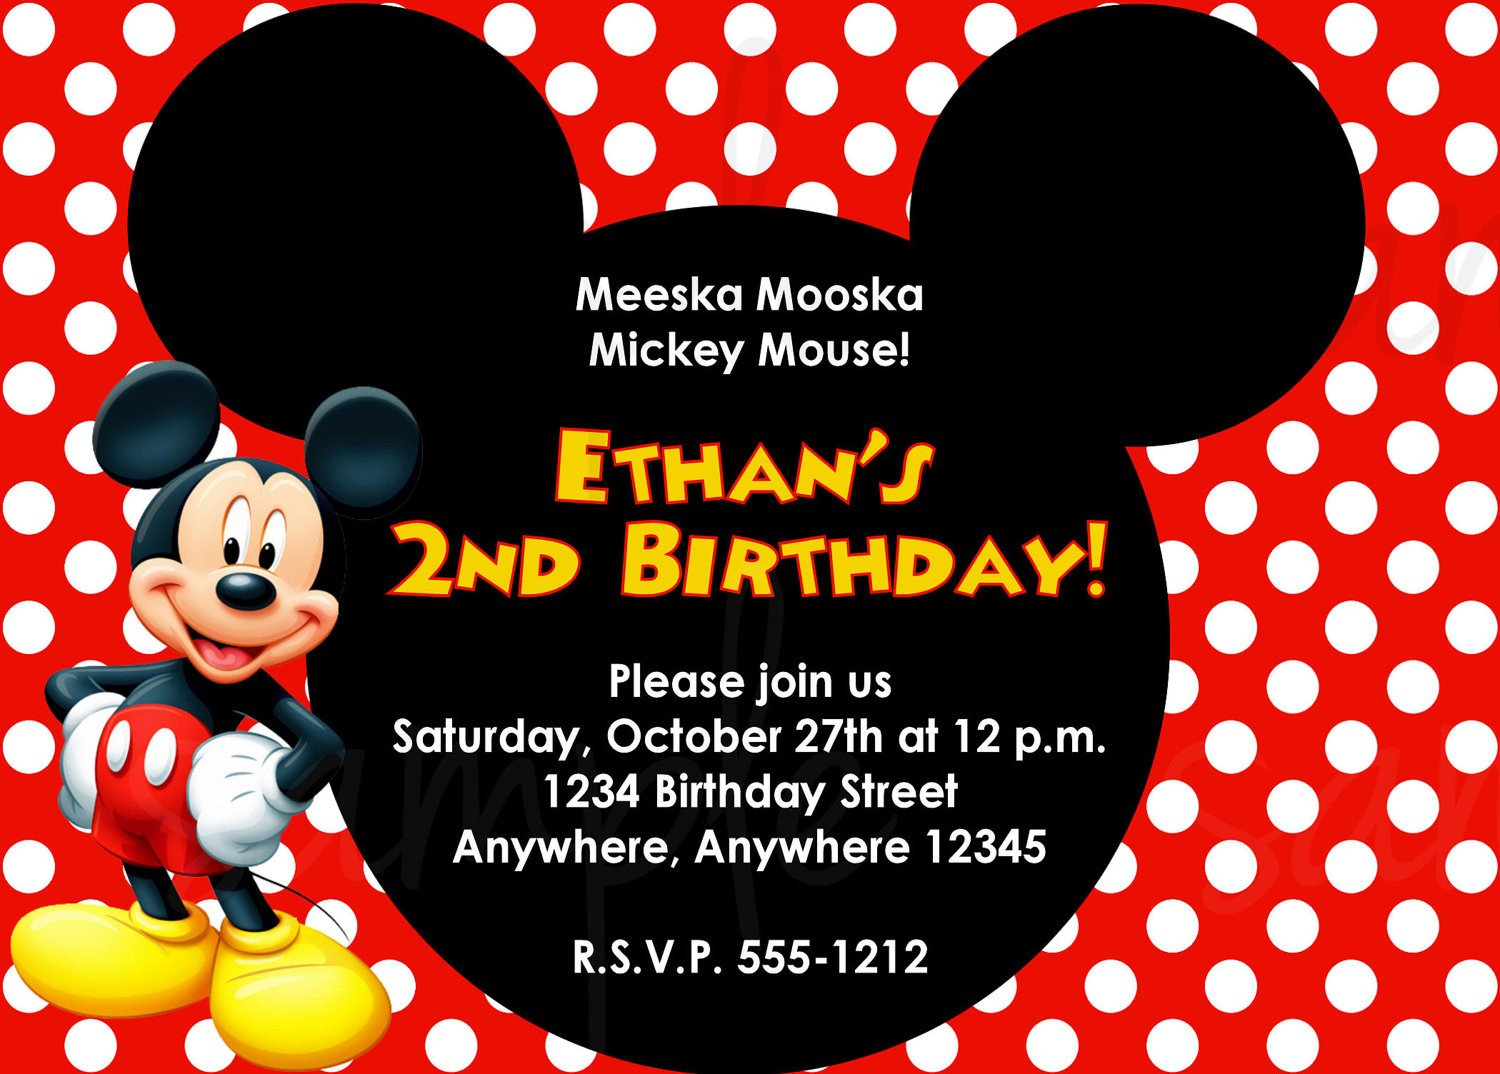 Mickey Mouse Photo Invitations Mickey Mouse Birthday Invitation